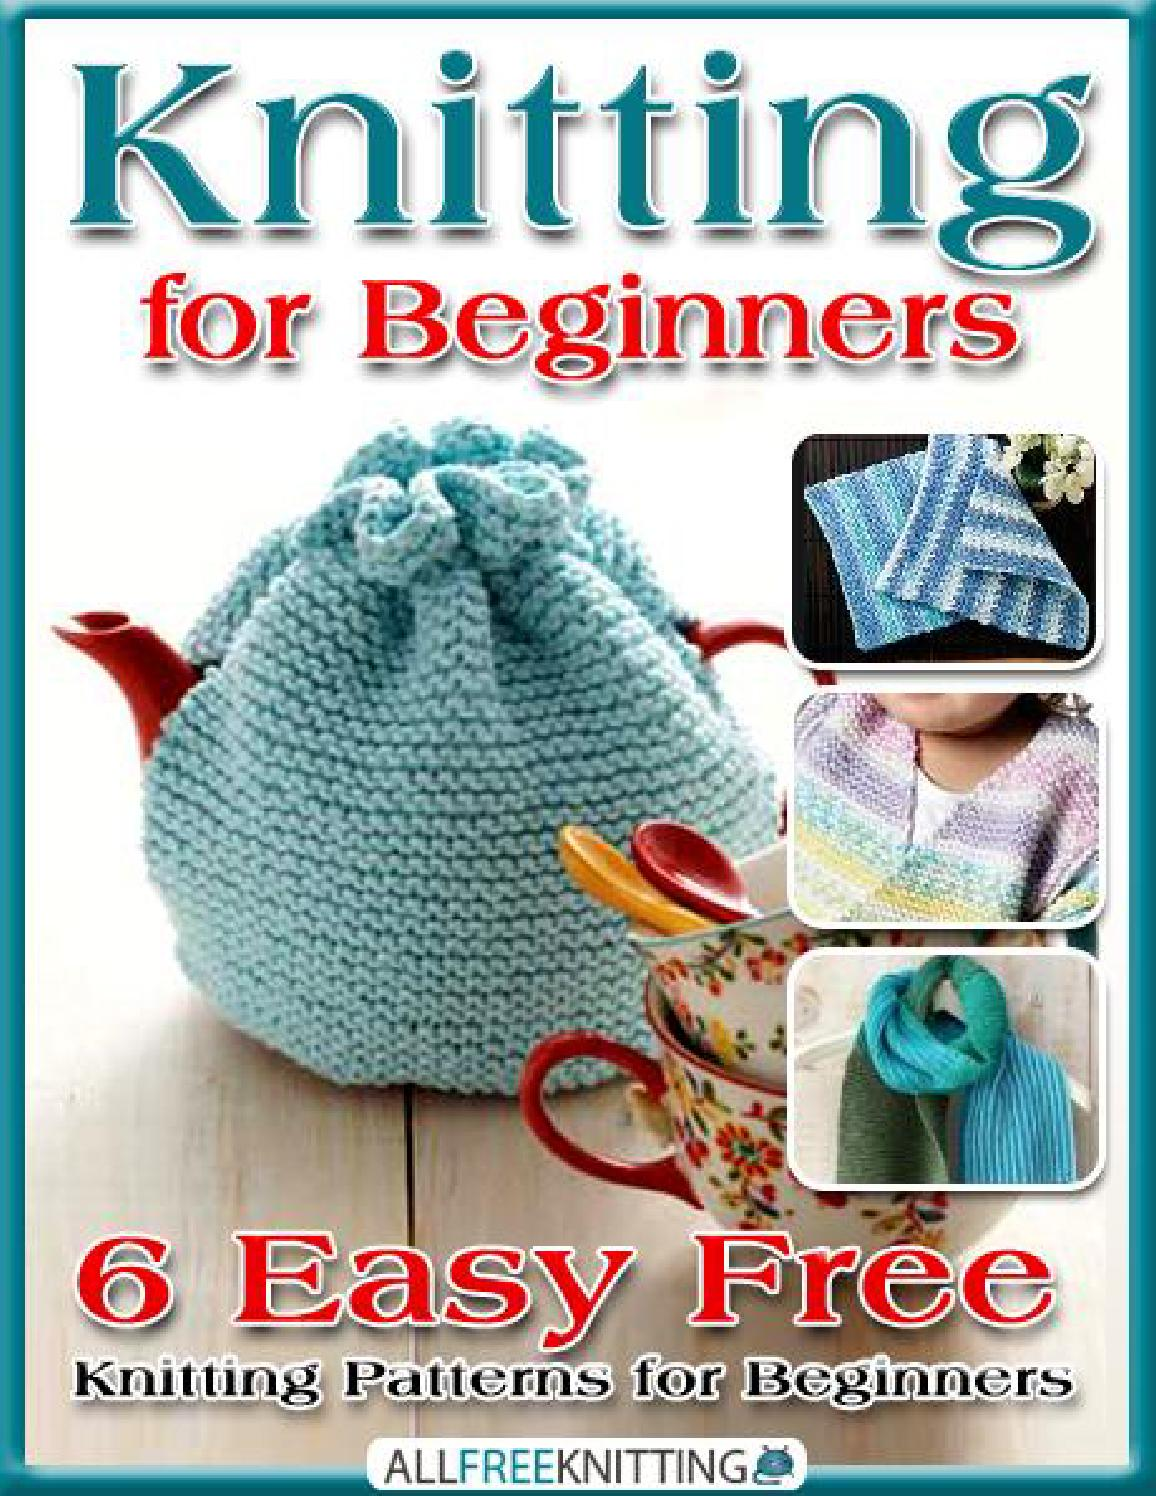 Knitting Instructions For Beginners With Pictures : Knitting for beginners easy free patterns